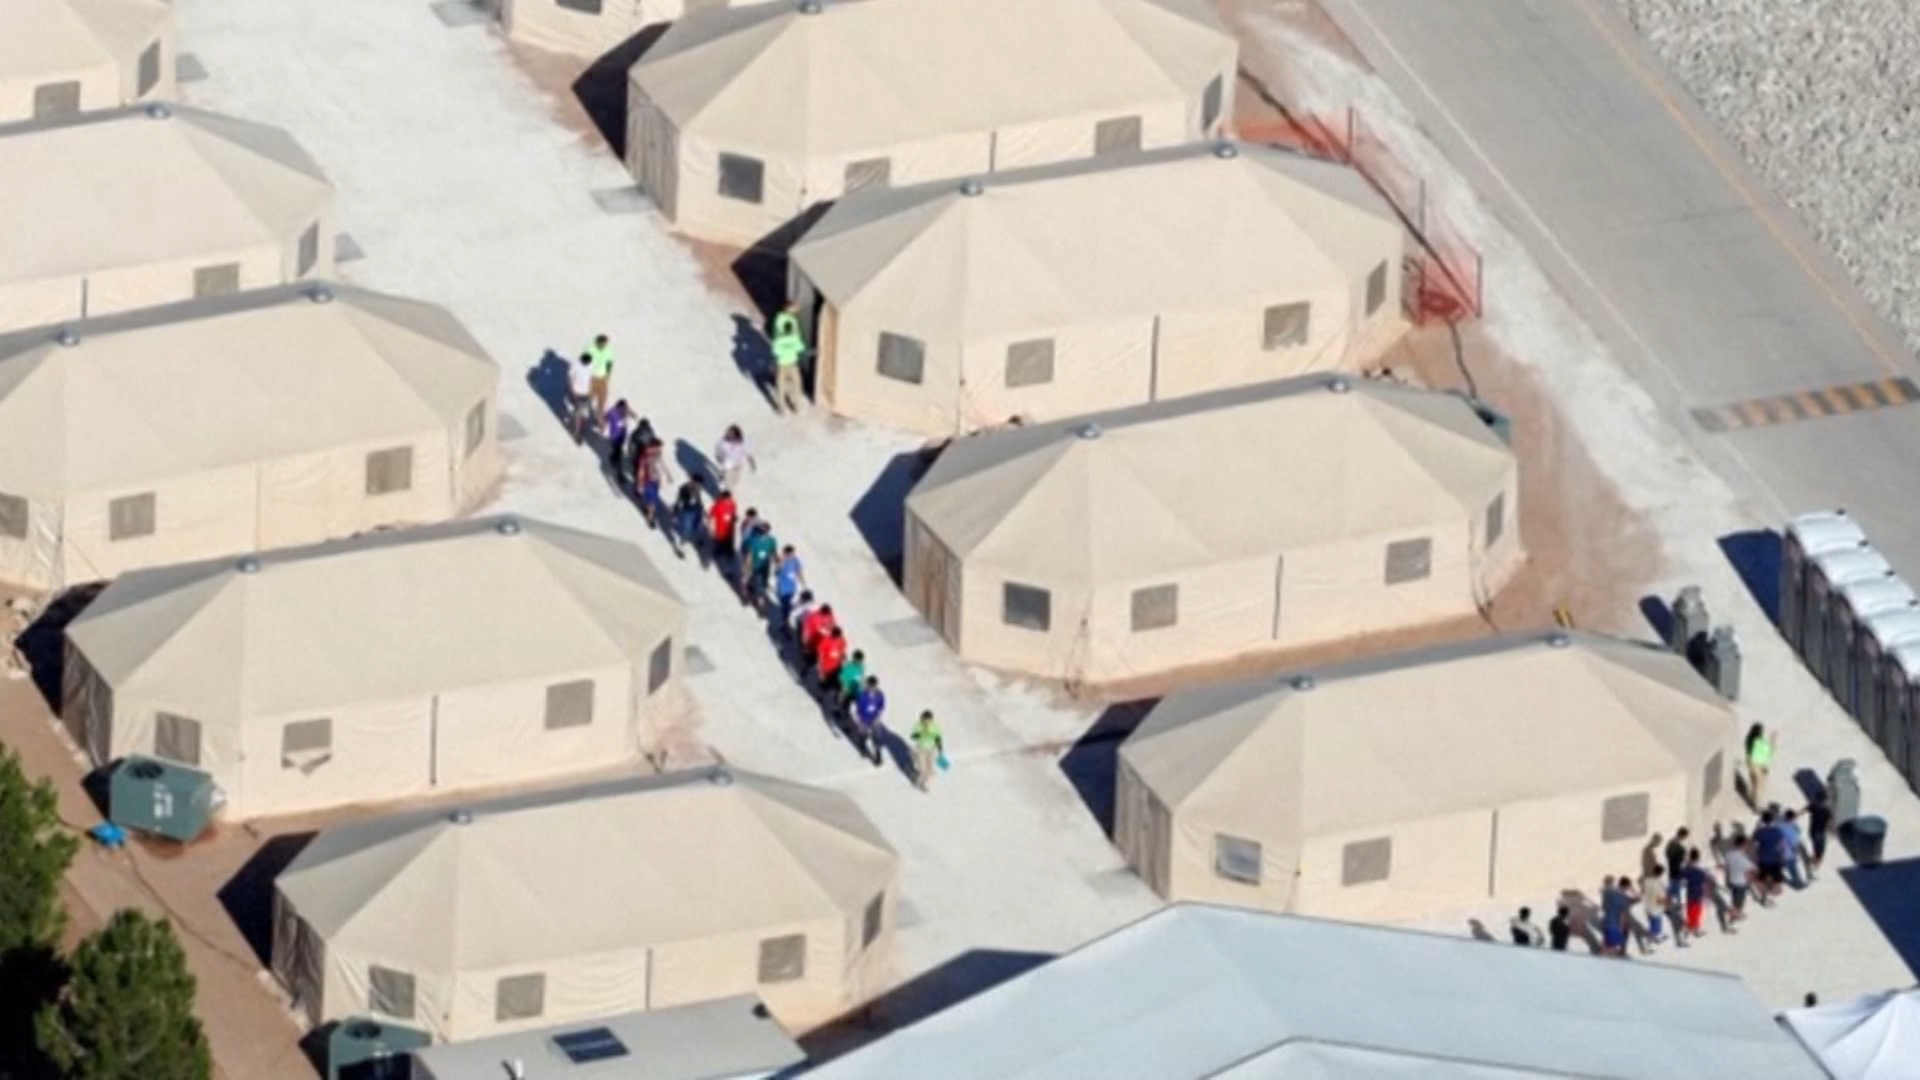 S4 migrant detention camp